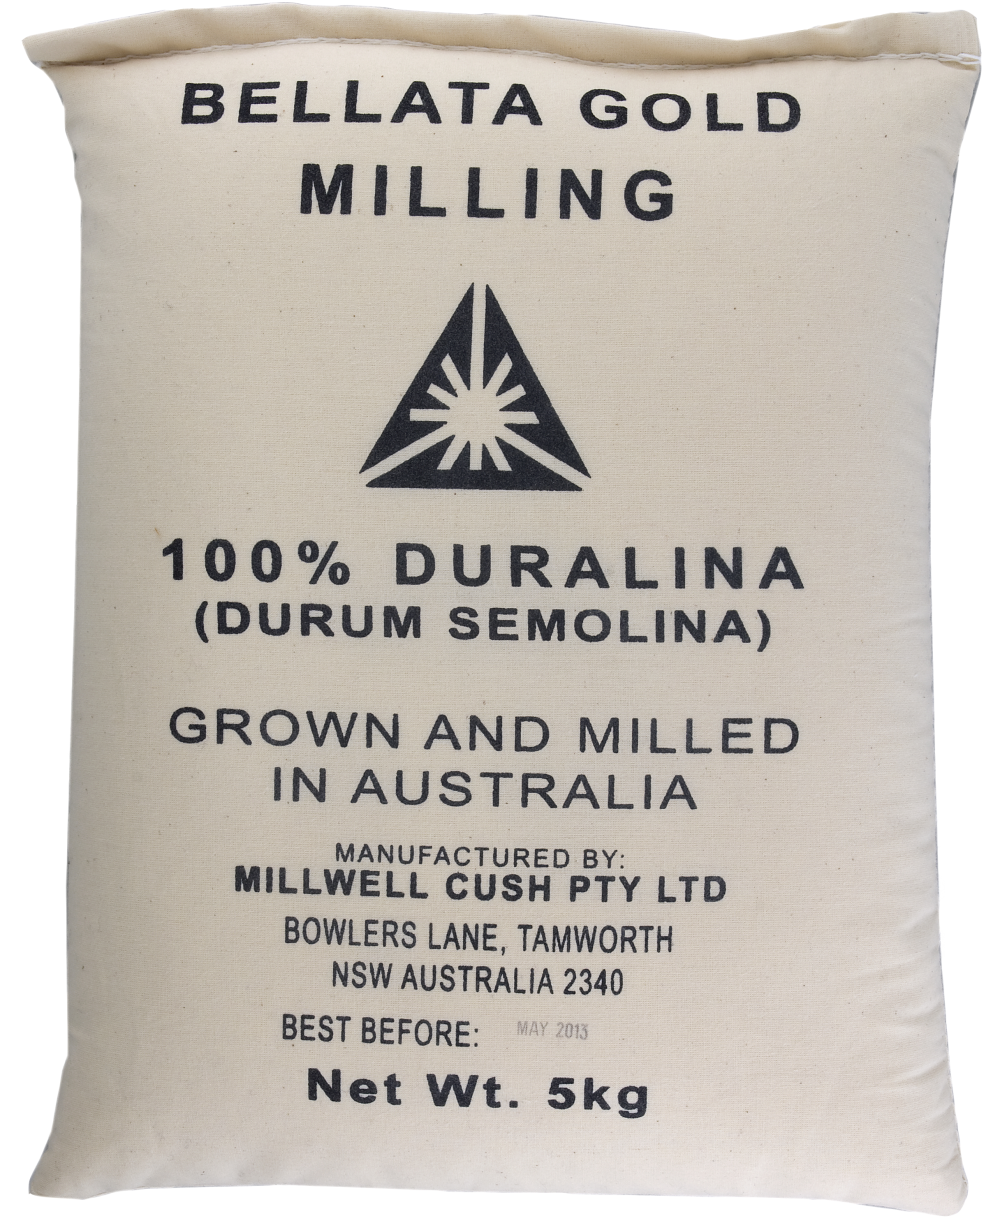 Bellata Gold Durum Semolina